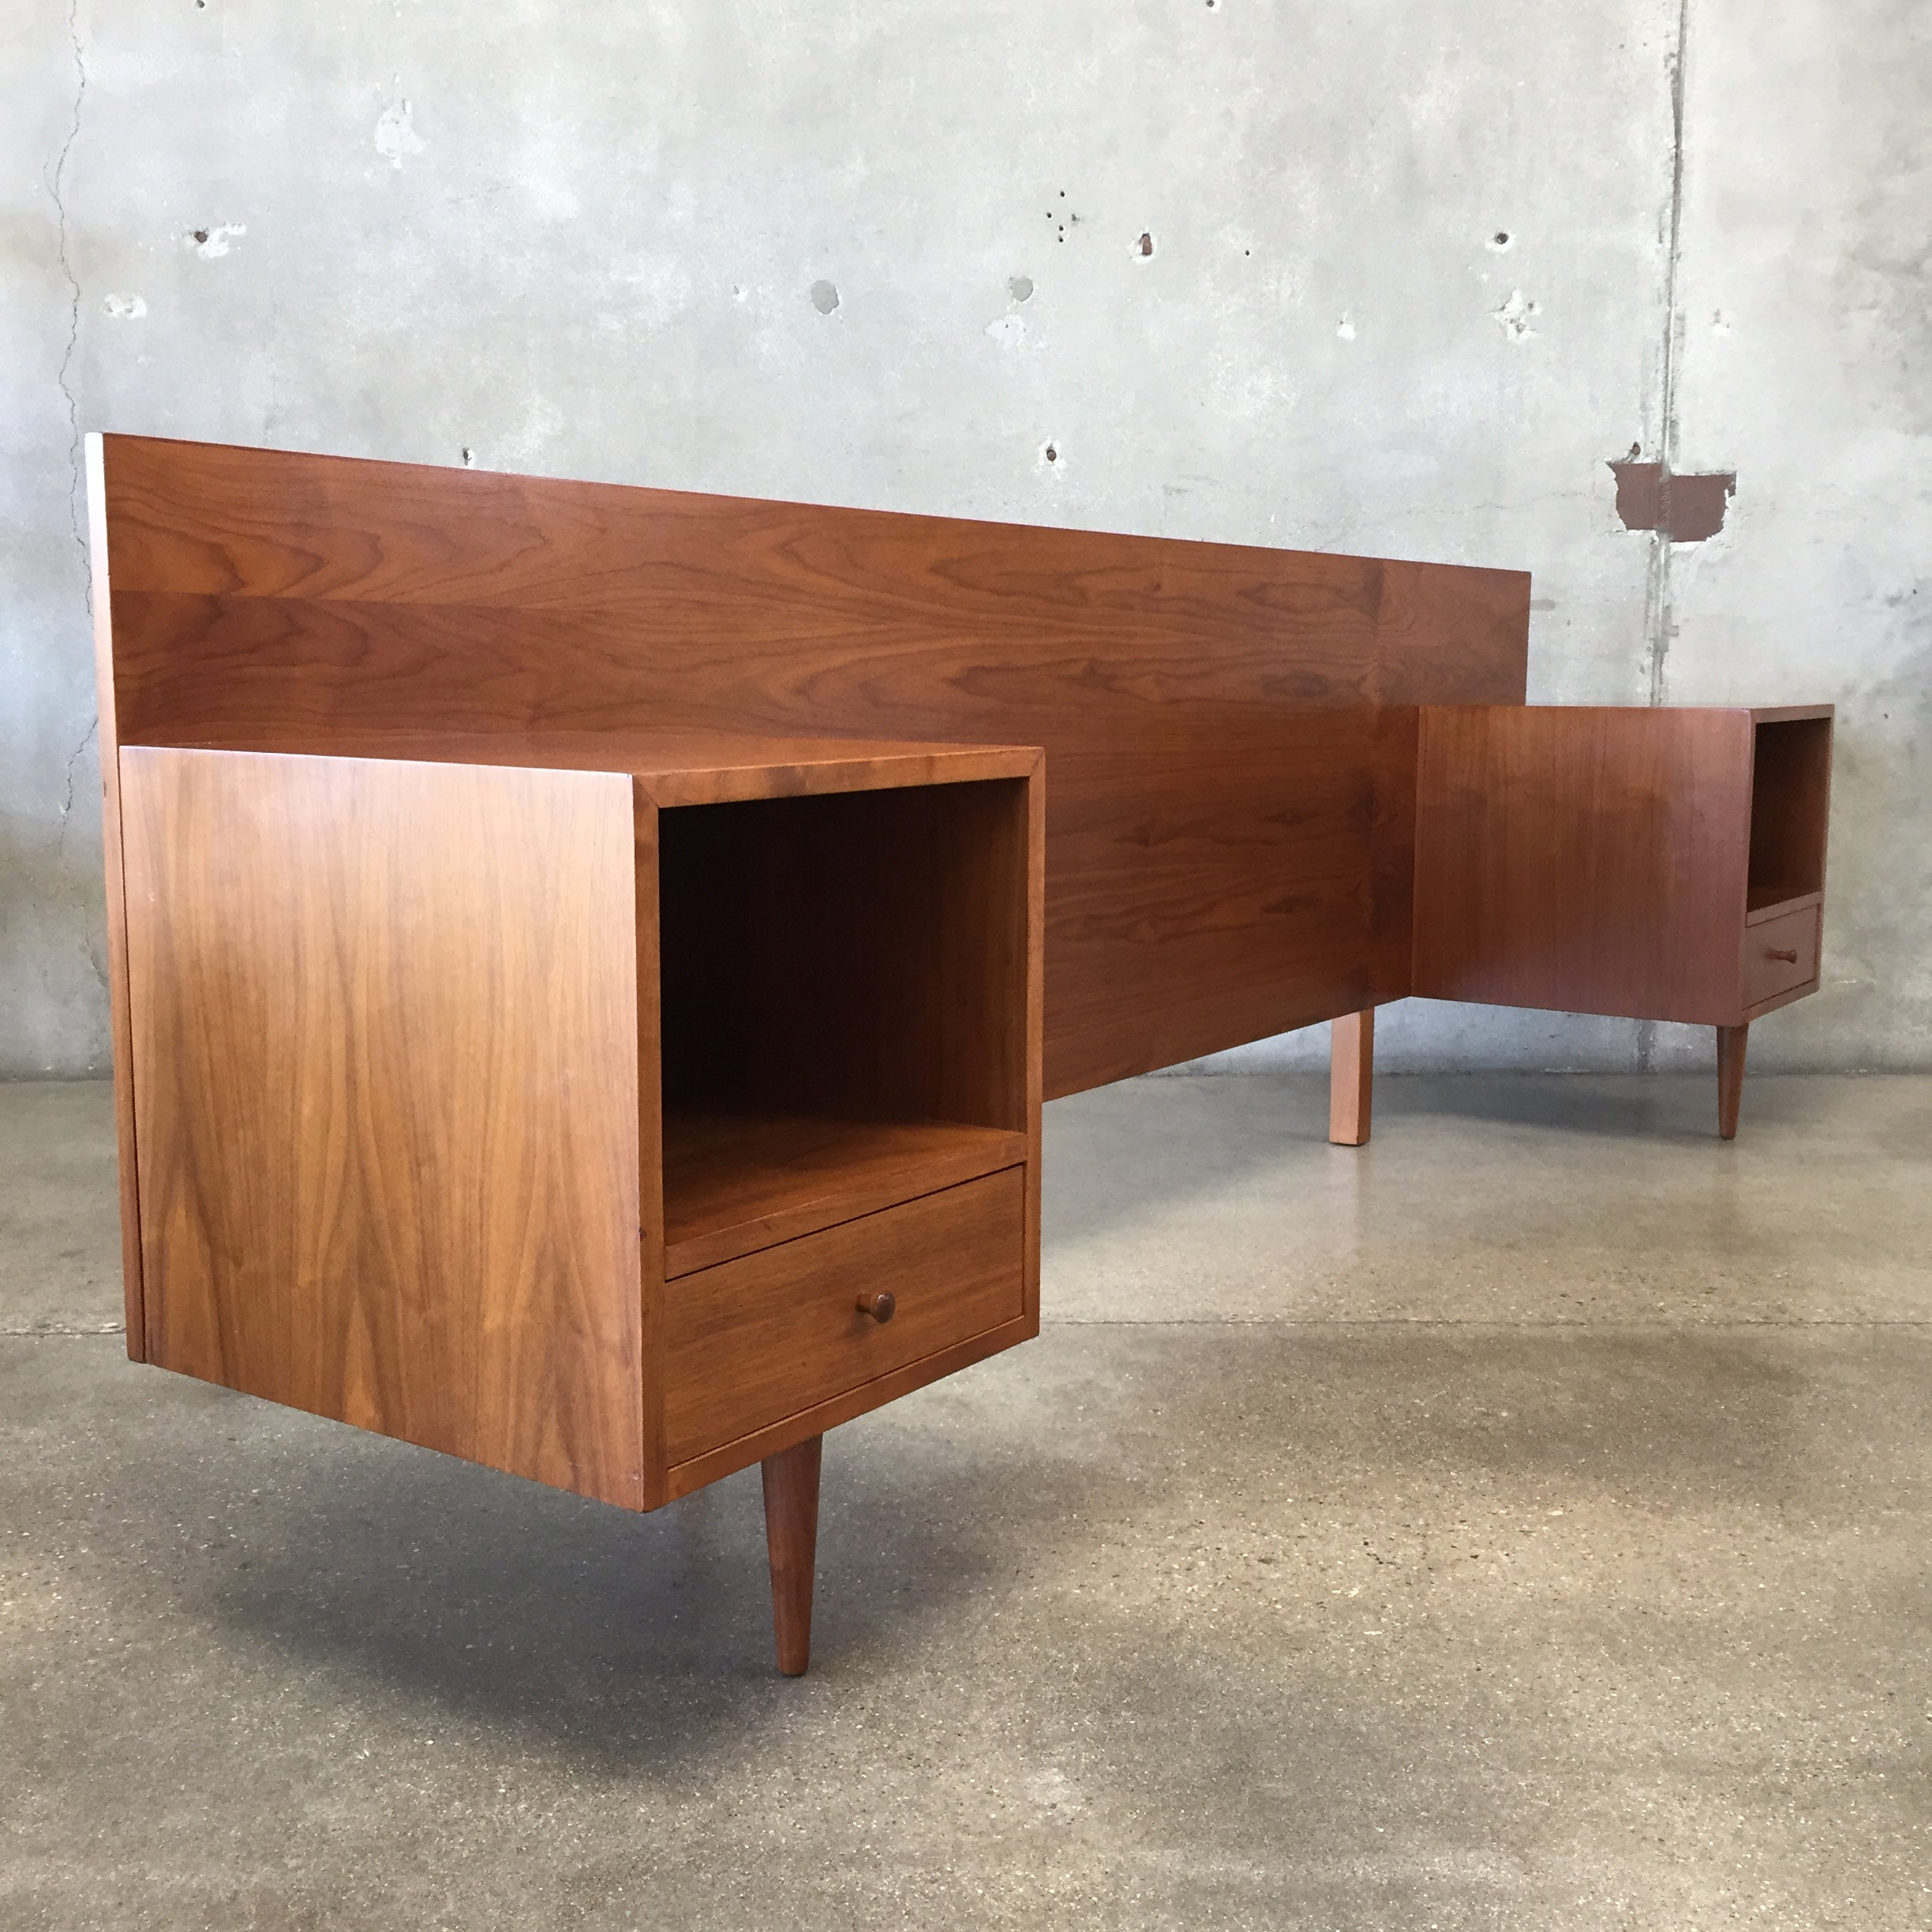 width aspect or height headboard full chairish size nightstands queen floating built fit danish in with modern teak